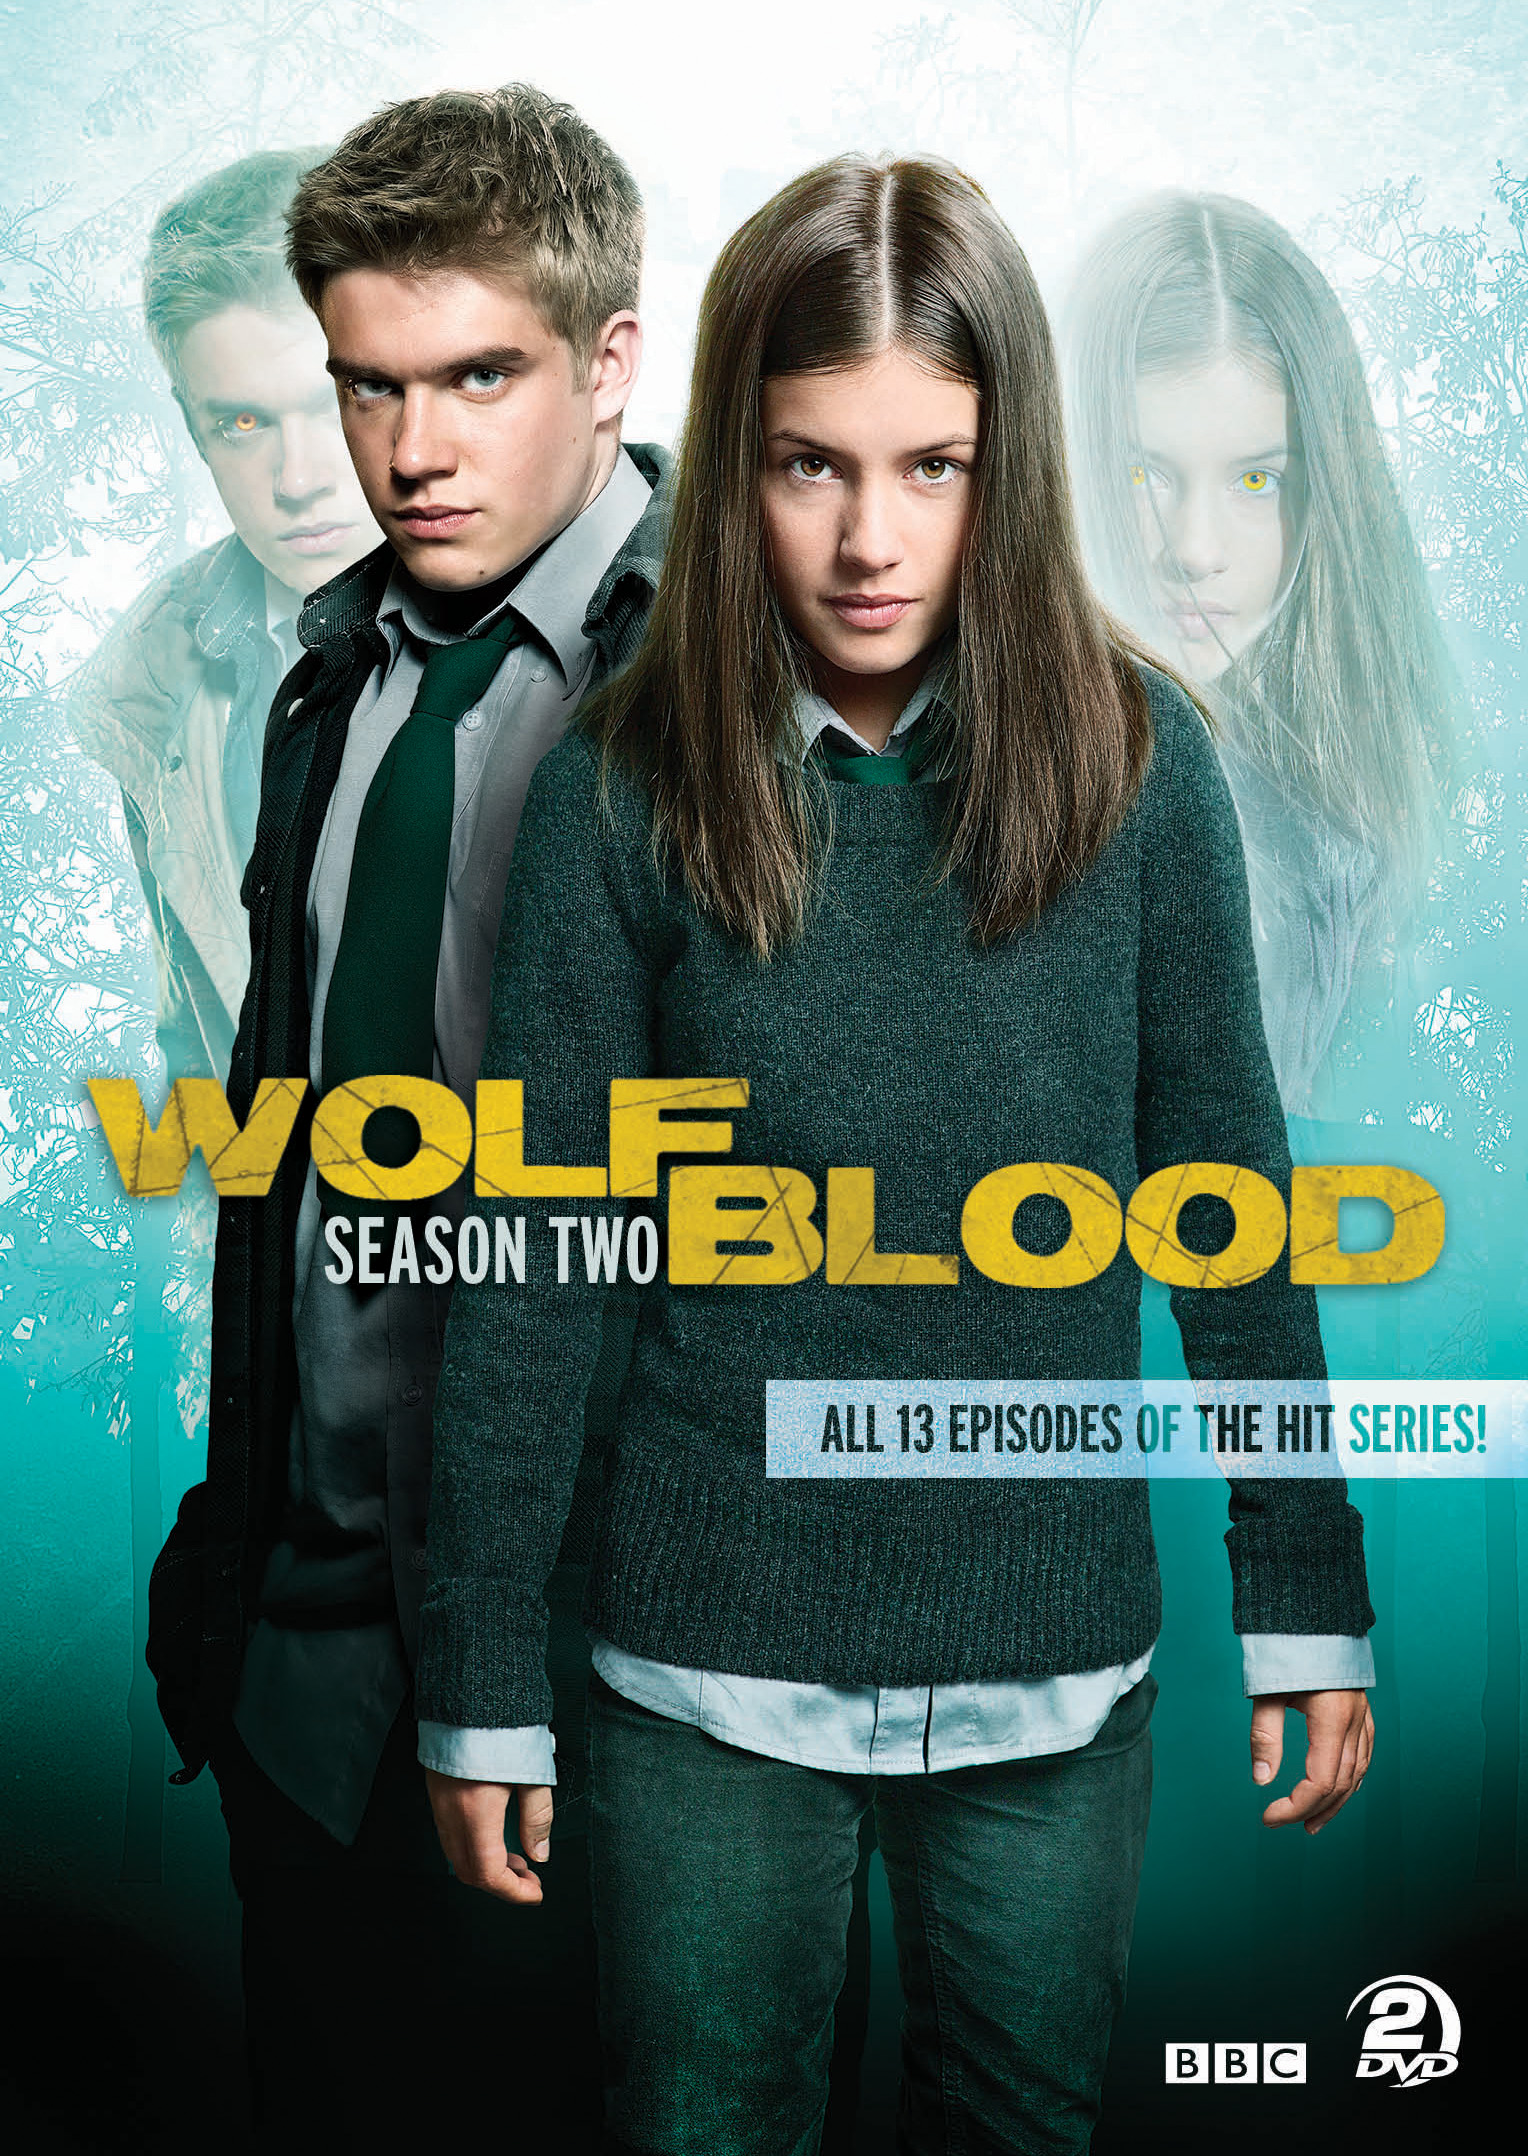 Wolfblood: Season 2 - ... Upcoming Movie Posters 2014